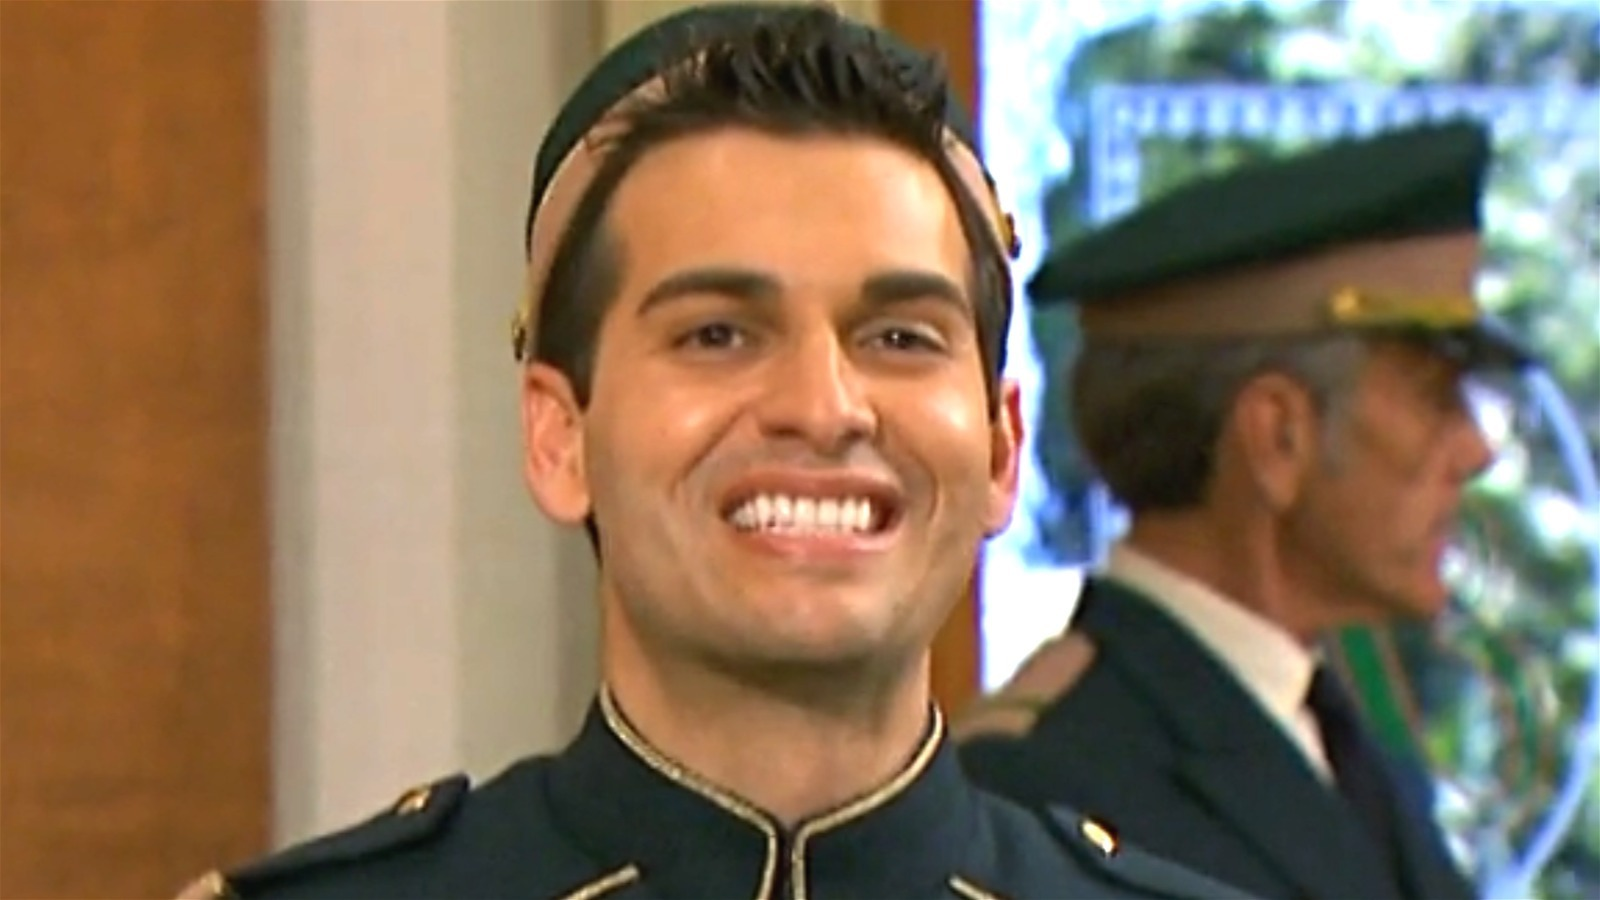 After Adrian R'Mante's successful performance, he was cast as a series regular in The Suite Life of Zack and Cody.